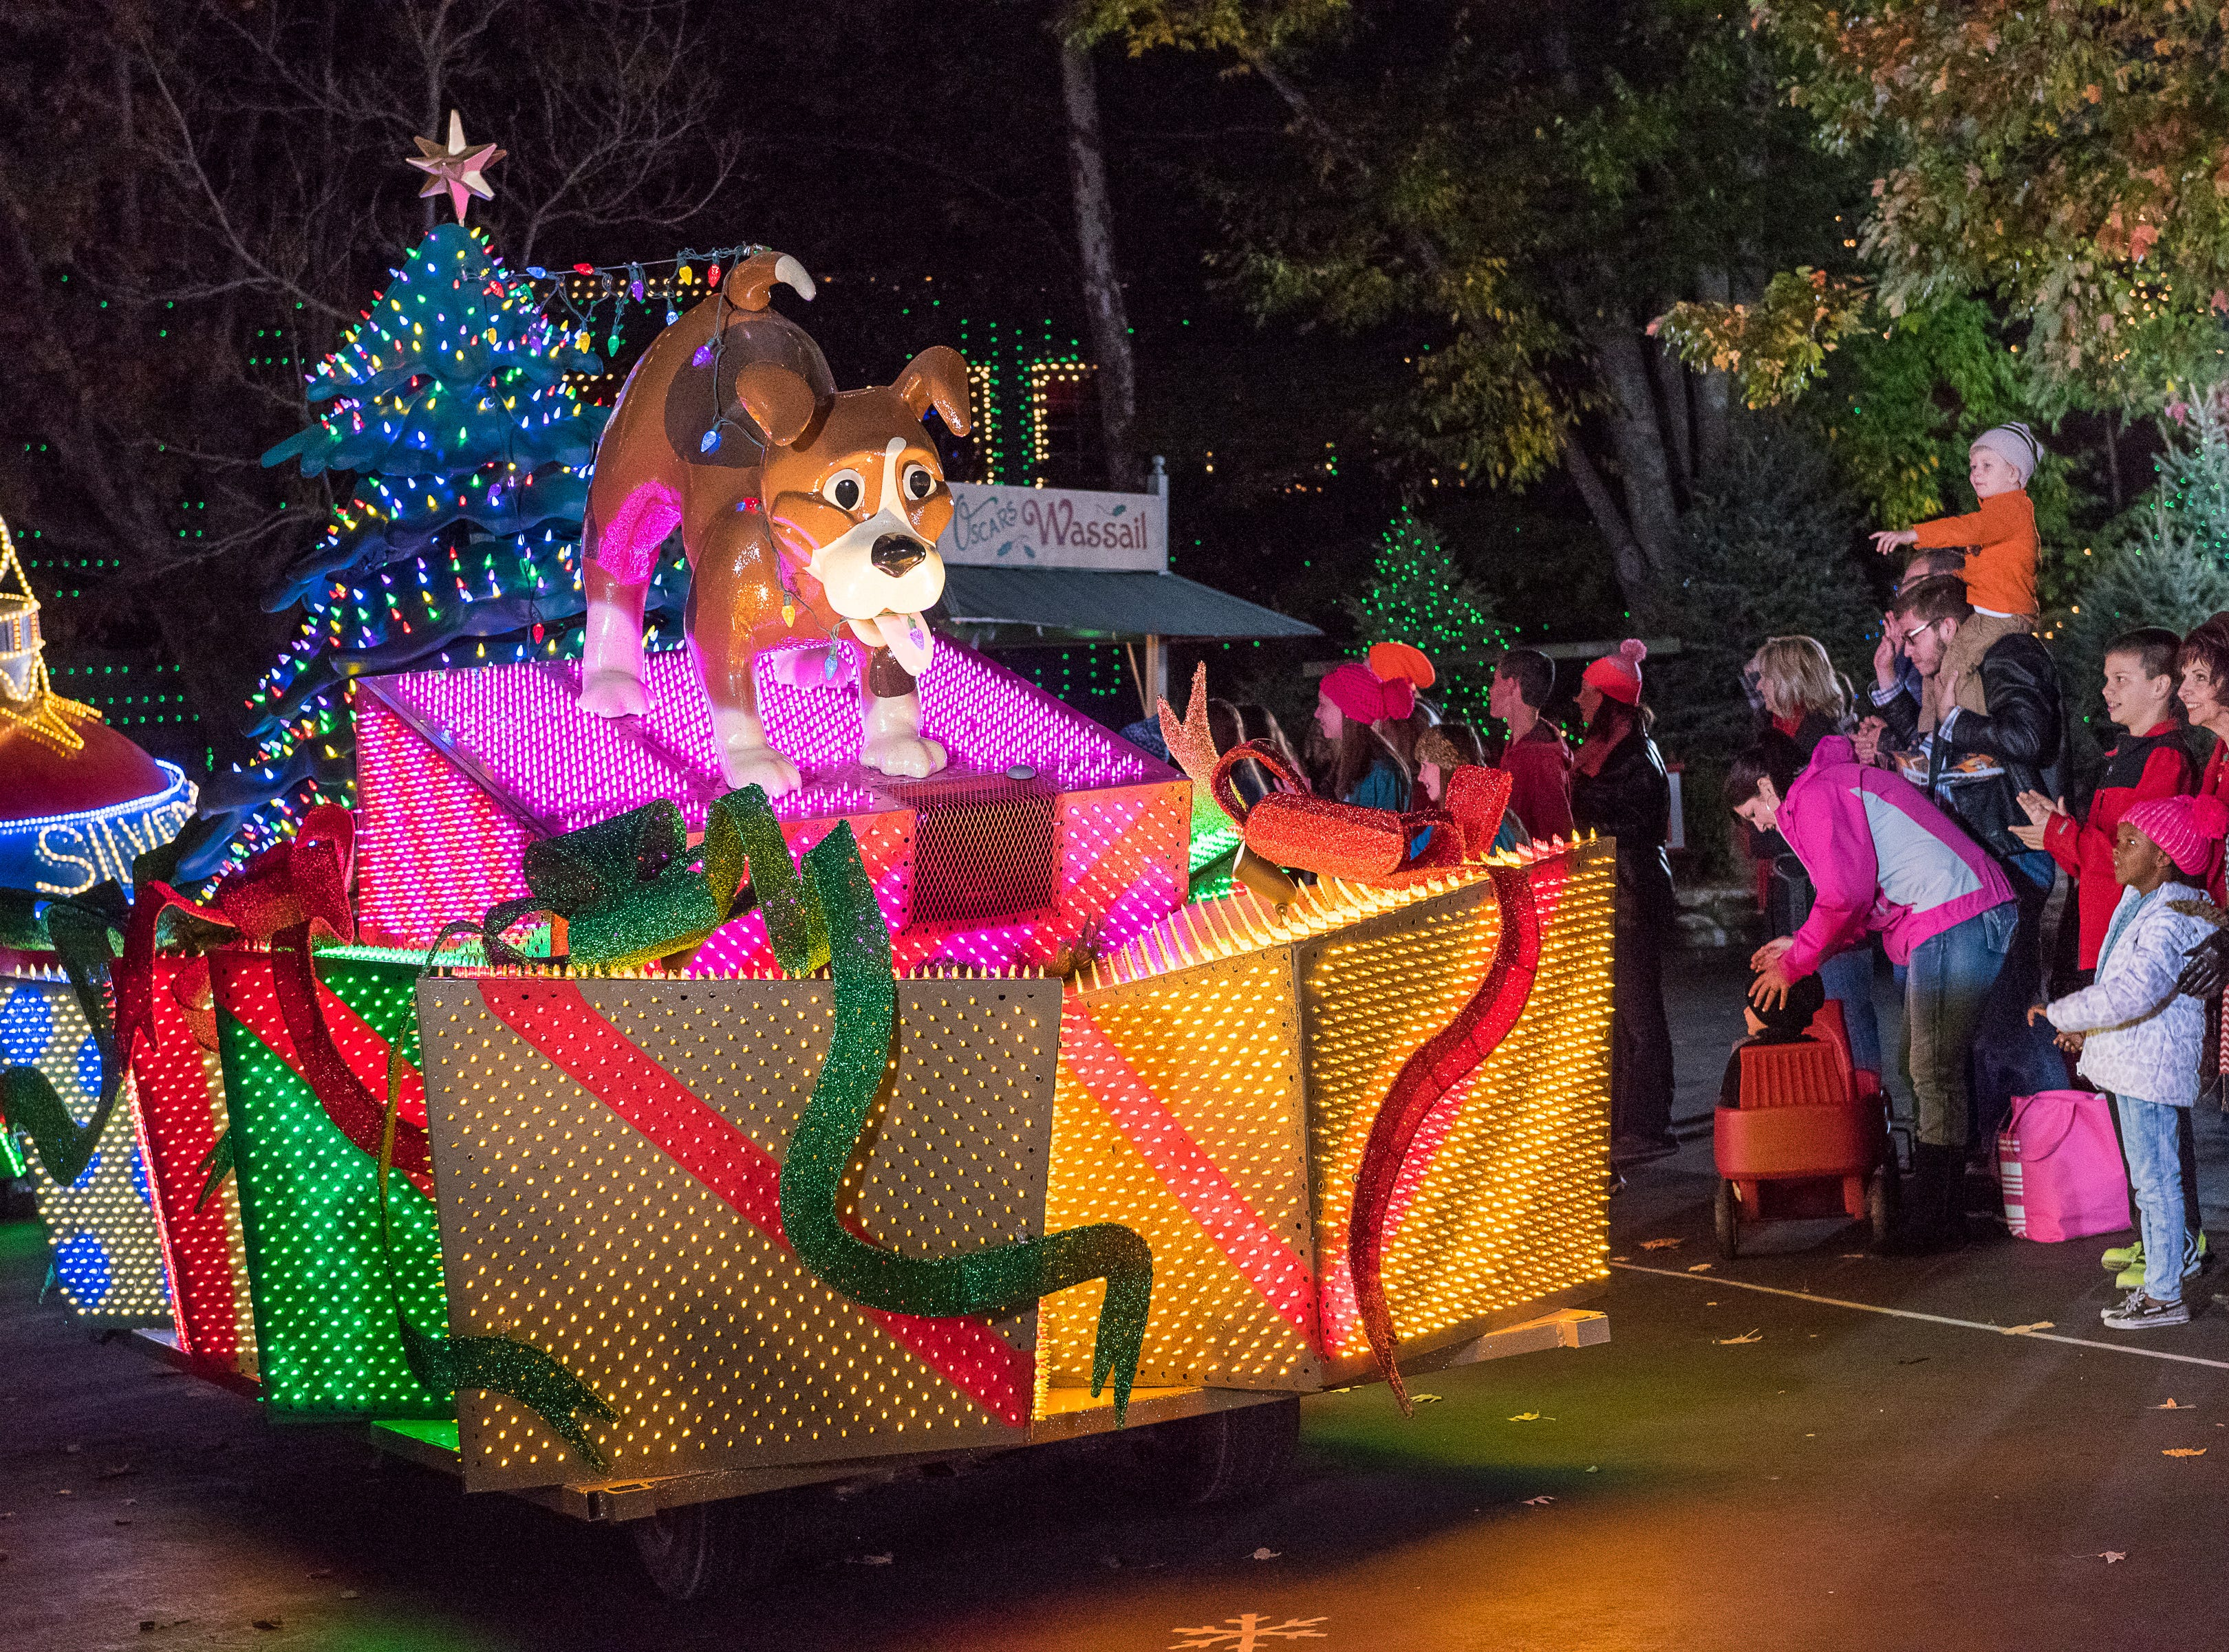 The light parade takes place twice each night at Silver Dollar City. Usually the crowds are smaller at the later version.